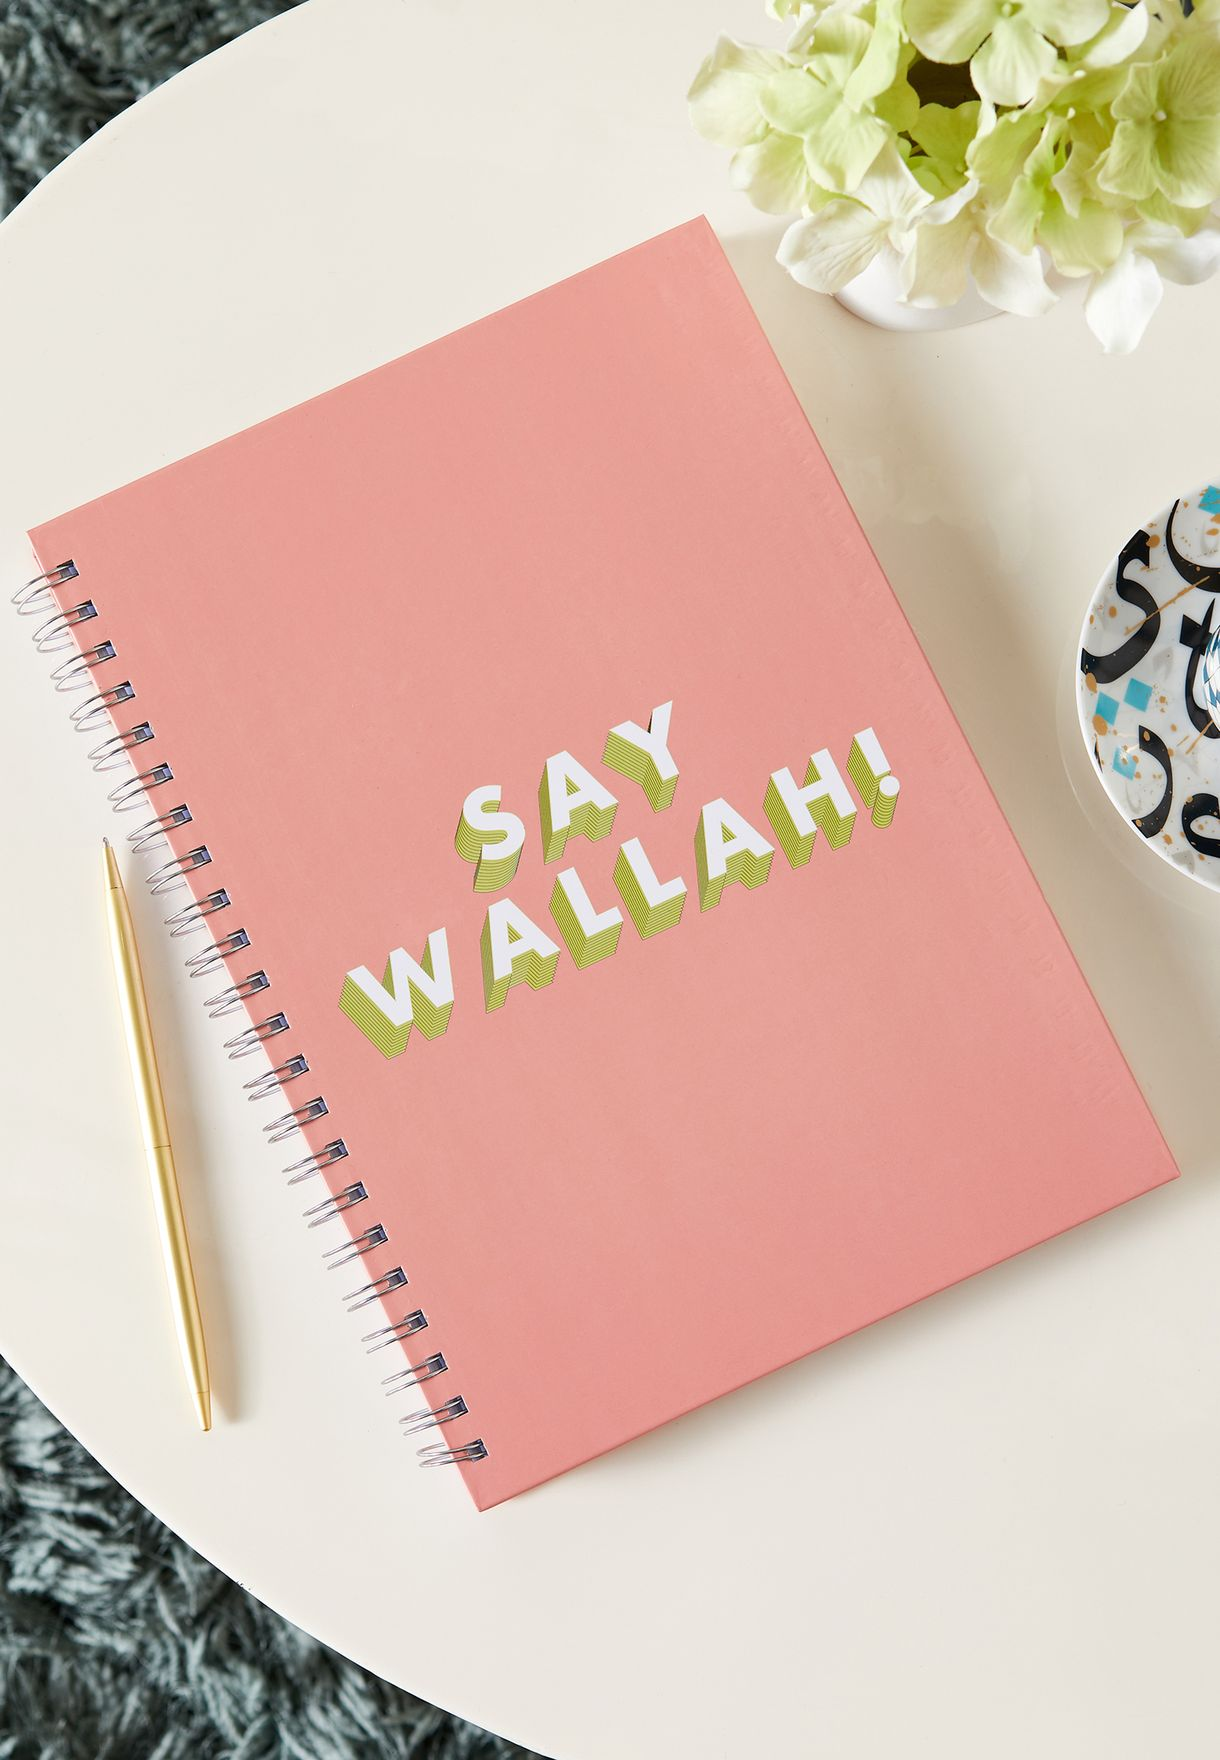 A4 Say Wallah Notebook